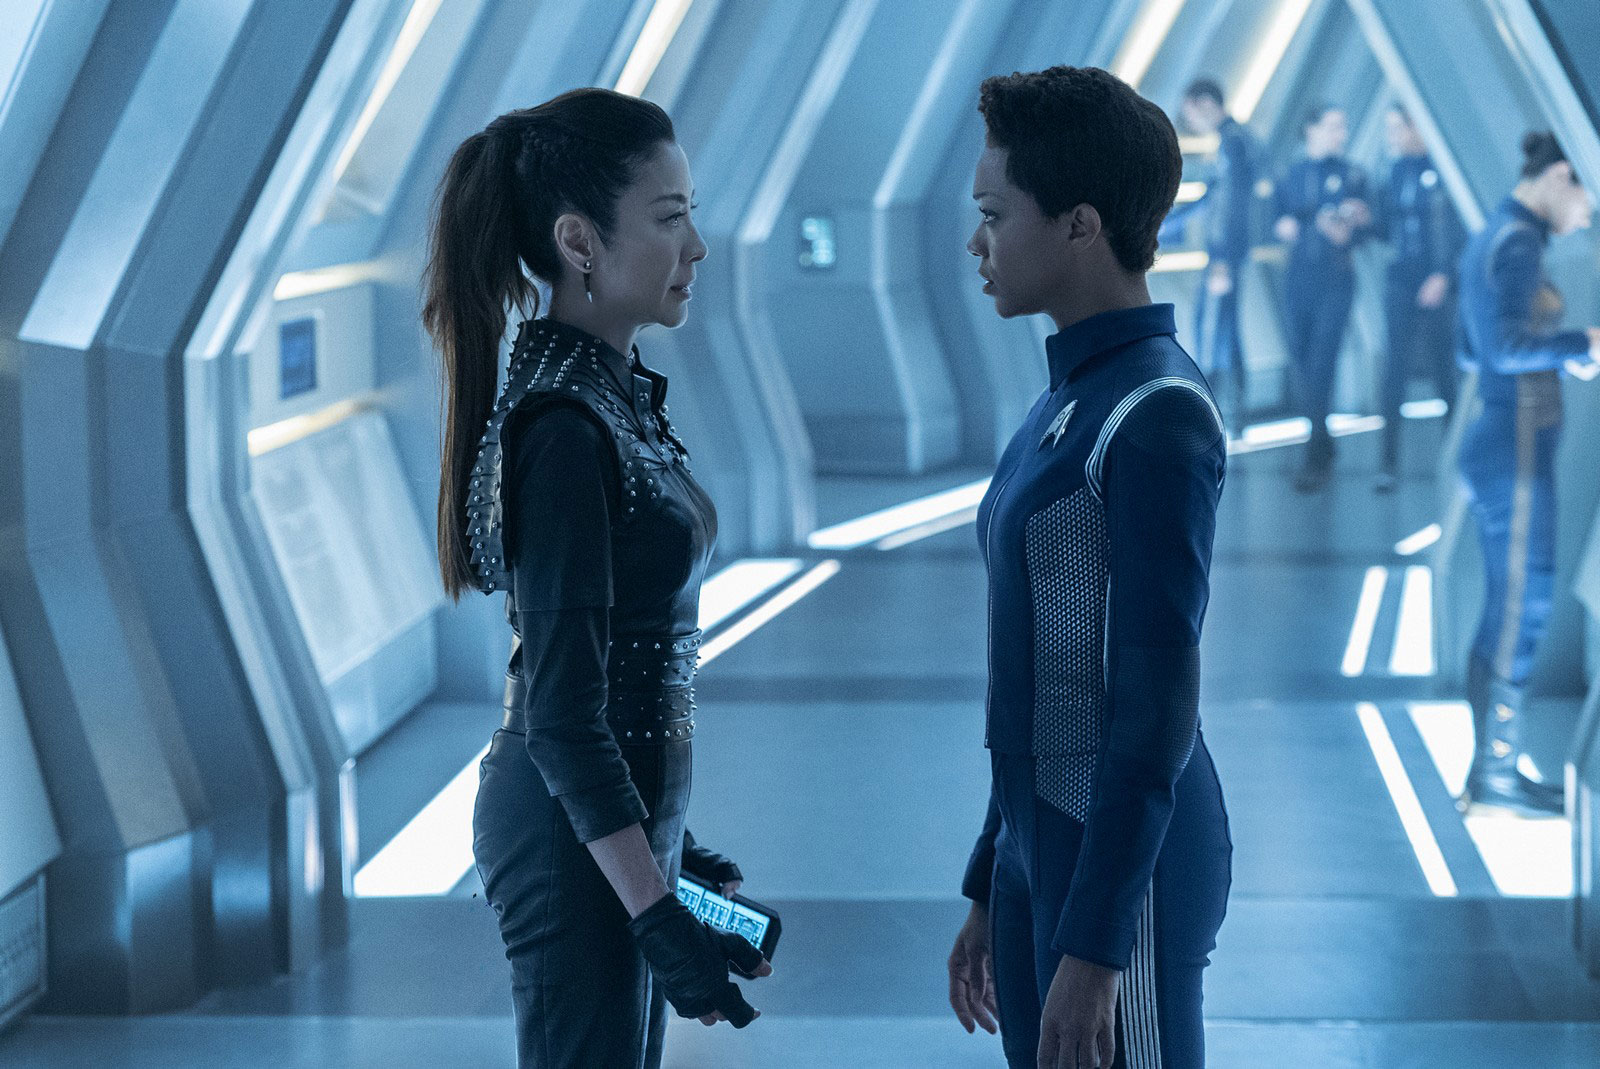 Michelle Yeoh as Philippa Georgiou and Sonequa Martin-Green as Michael Burnham